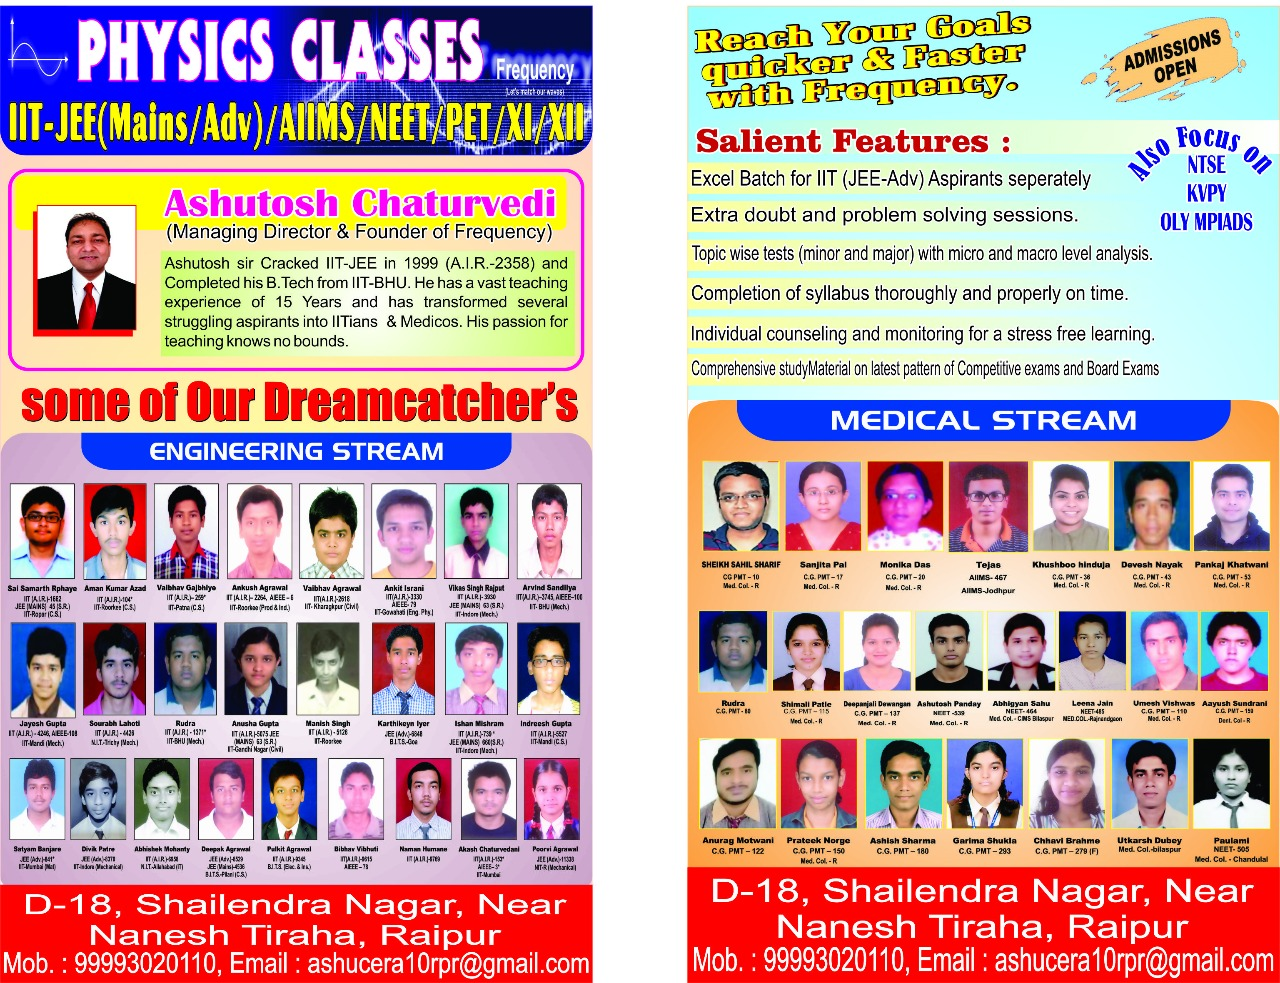 Ashutosh Chaturvedi Physics Classes